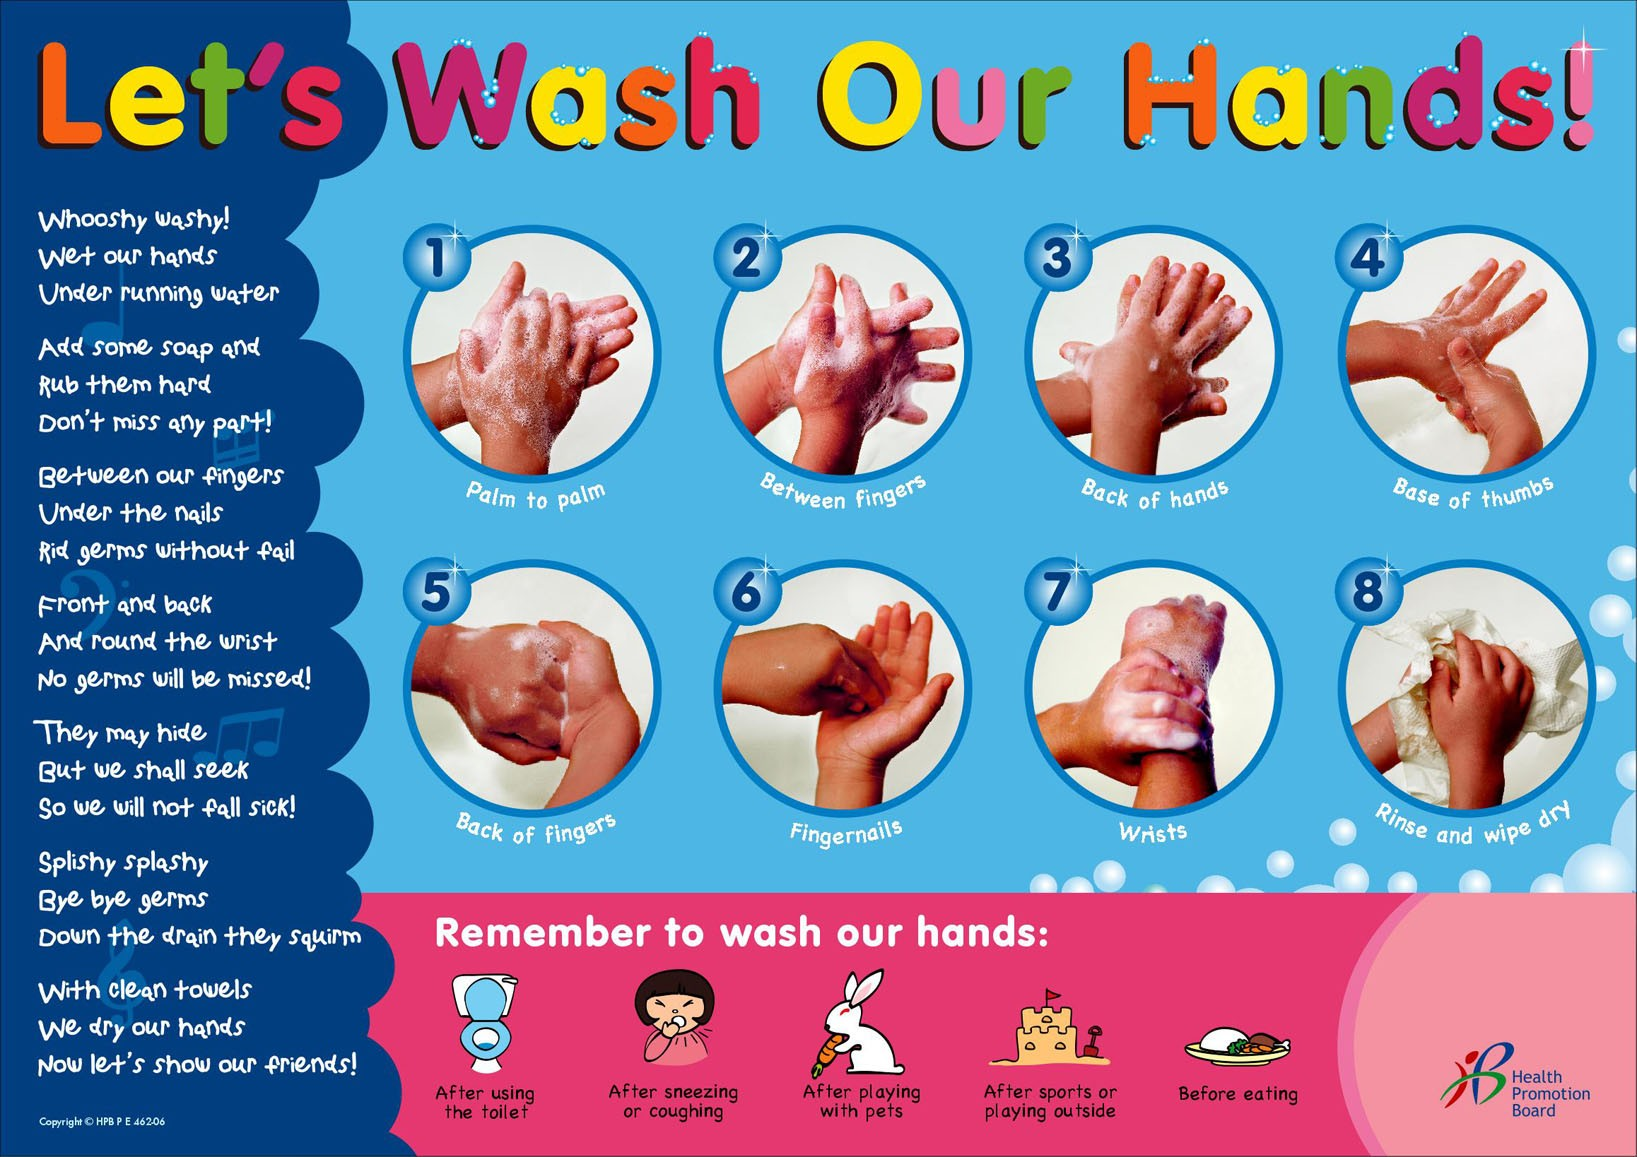 Hand washing soap and water clipart graphic transparent 17 Best images about Hand washing - Hygiene on Pinterest | Spreads ... graphic transparent